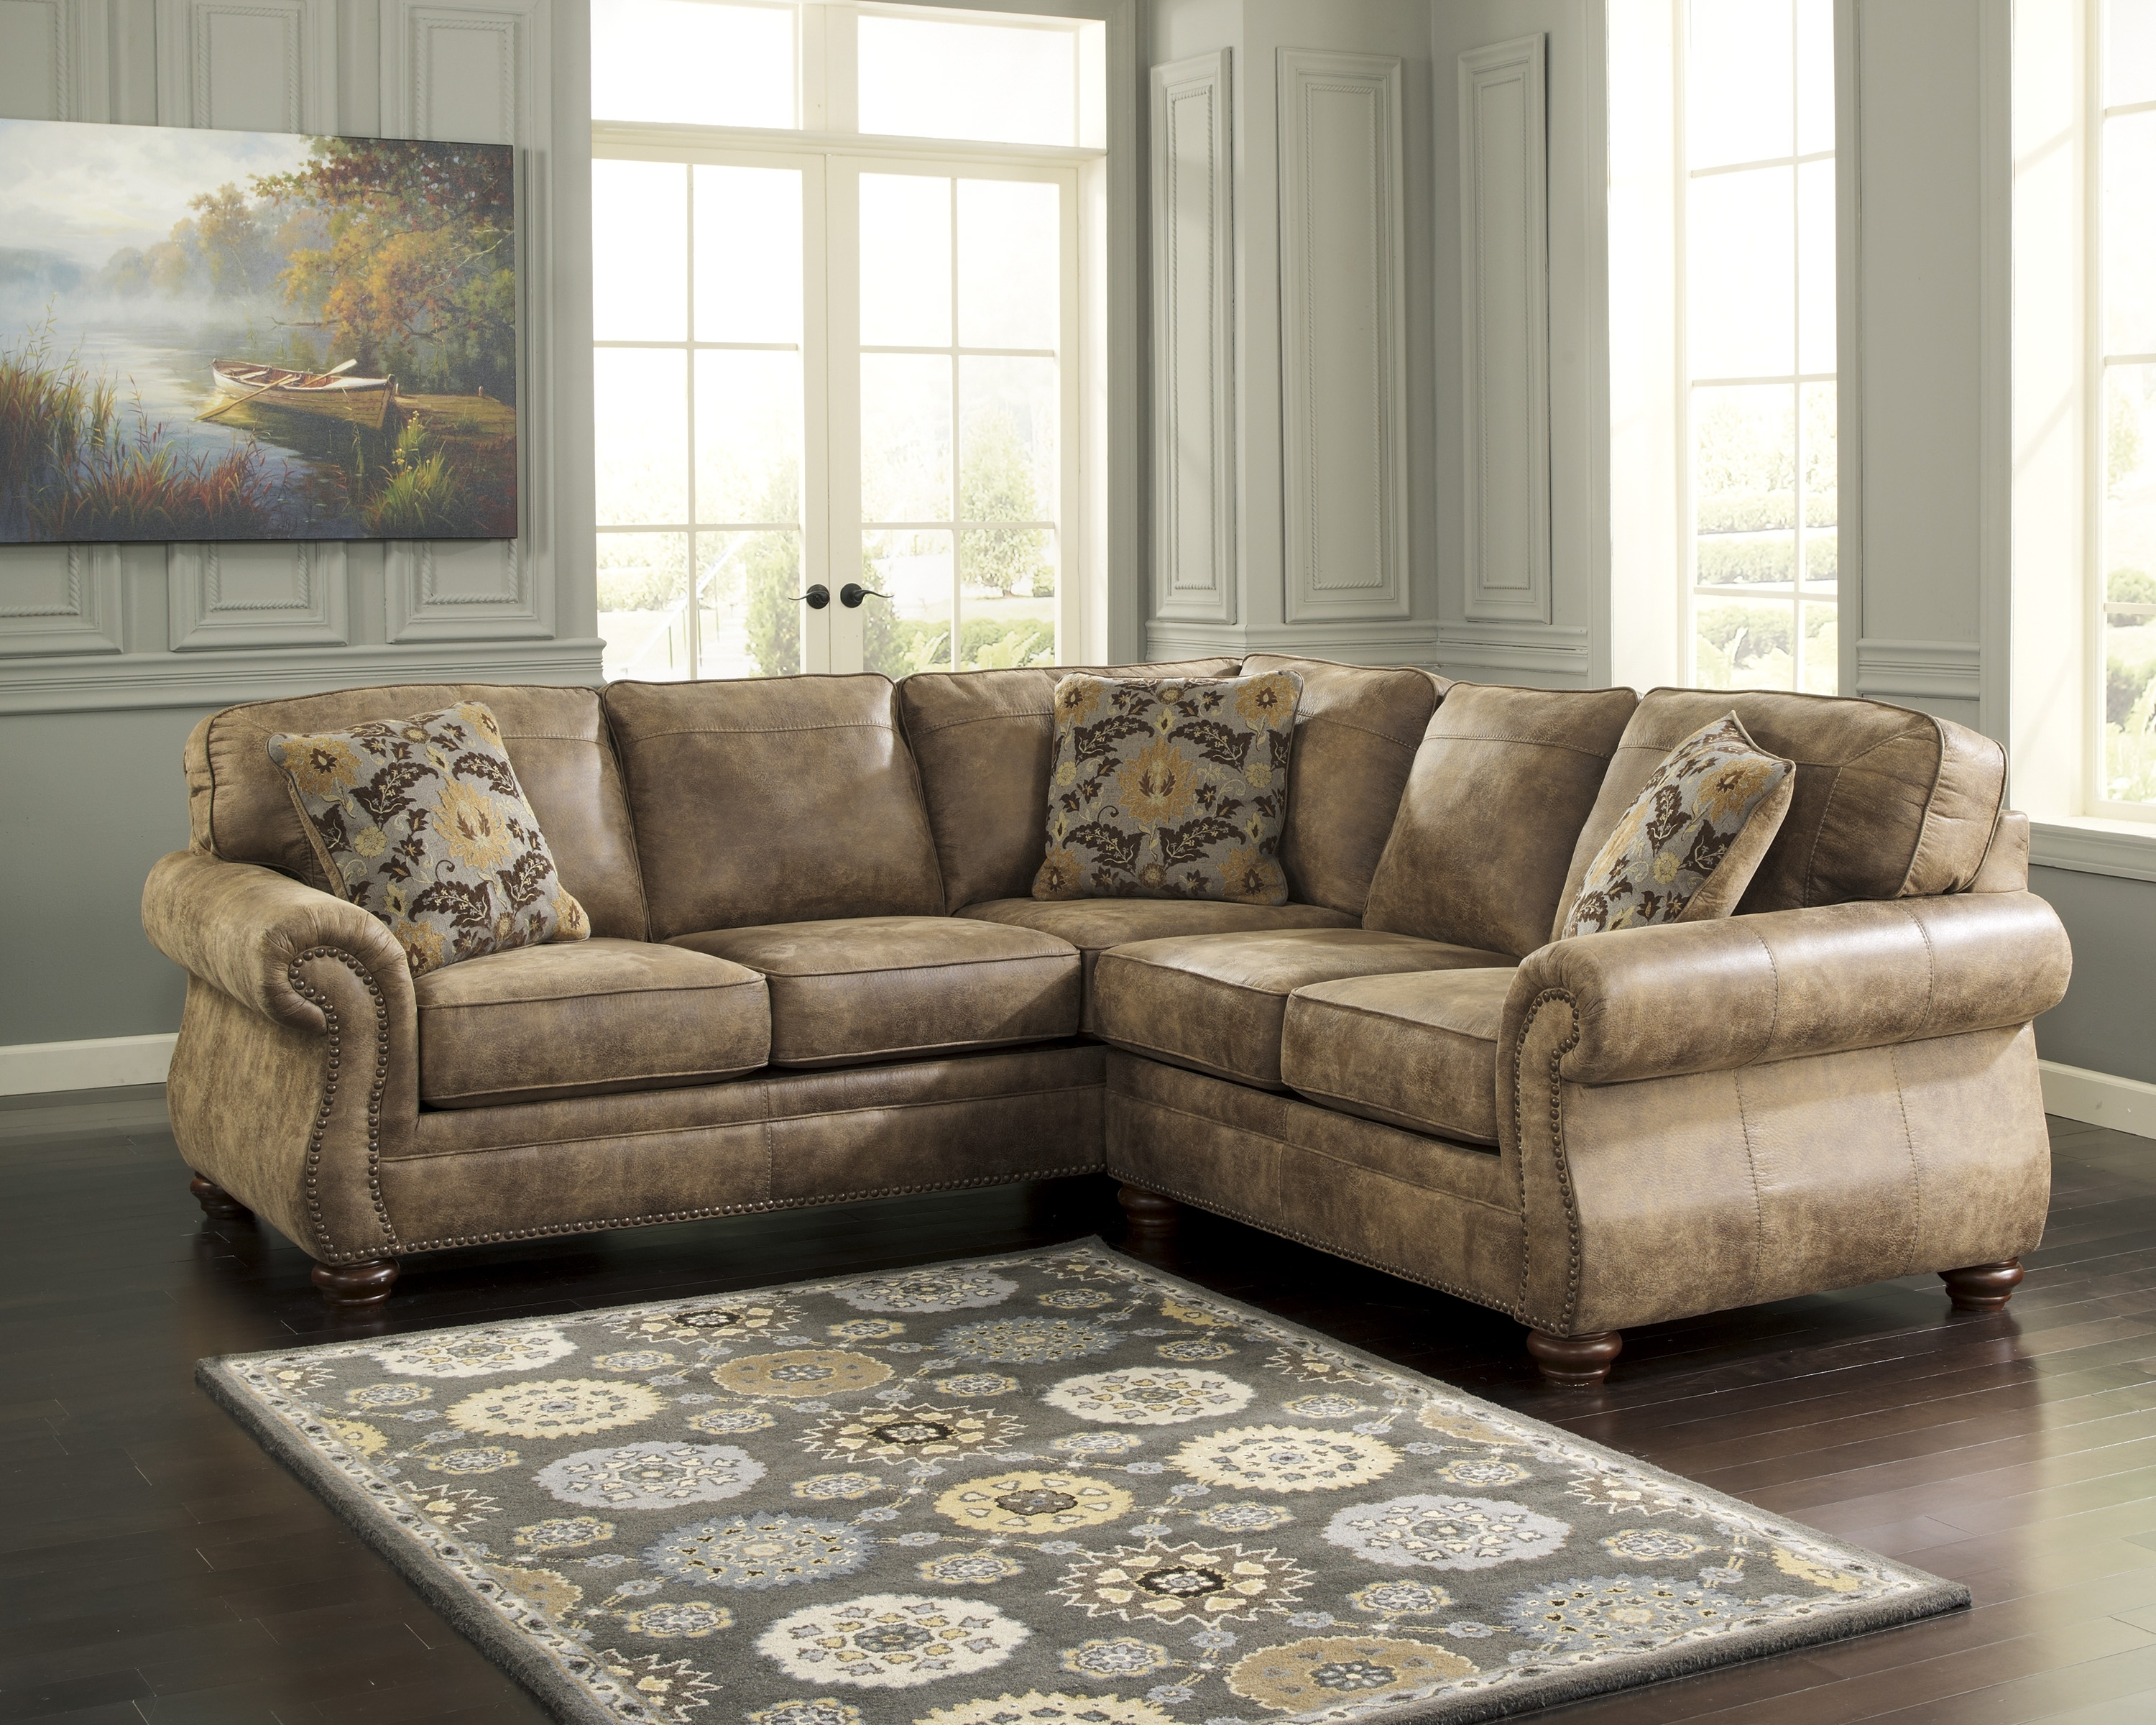 Most Recent Sectional Sofas With Nailhead Trim For Ashley Furniture Fabric Sectionals, Ashley Furniture Sofa Sleepers (View 9 of 20)